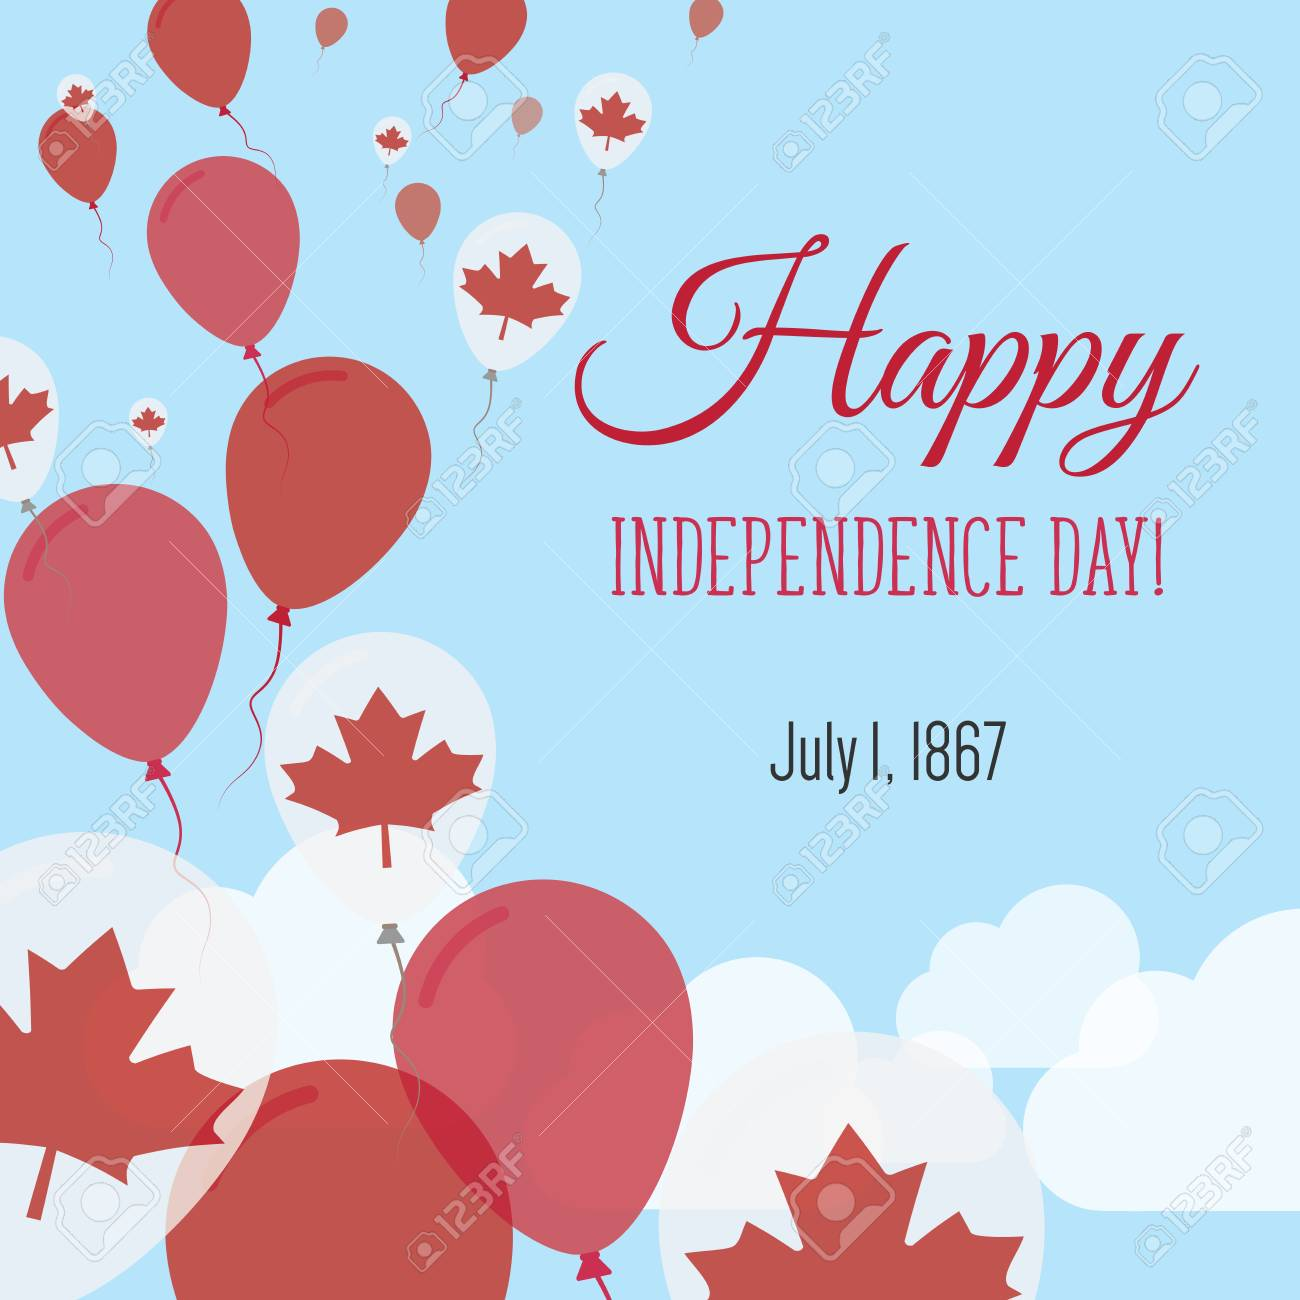 Independence day flat greeting card canada independence day independence day flat greeting card canada independence day canadian flag balloons patriotic poster m4hsunfo